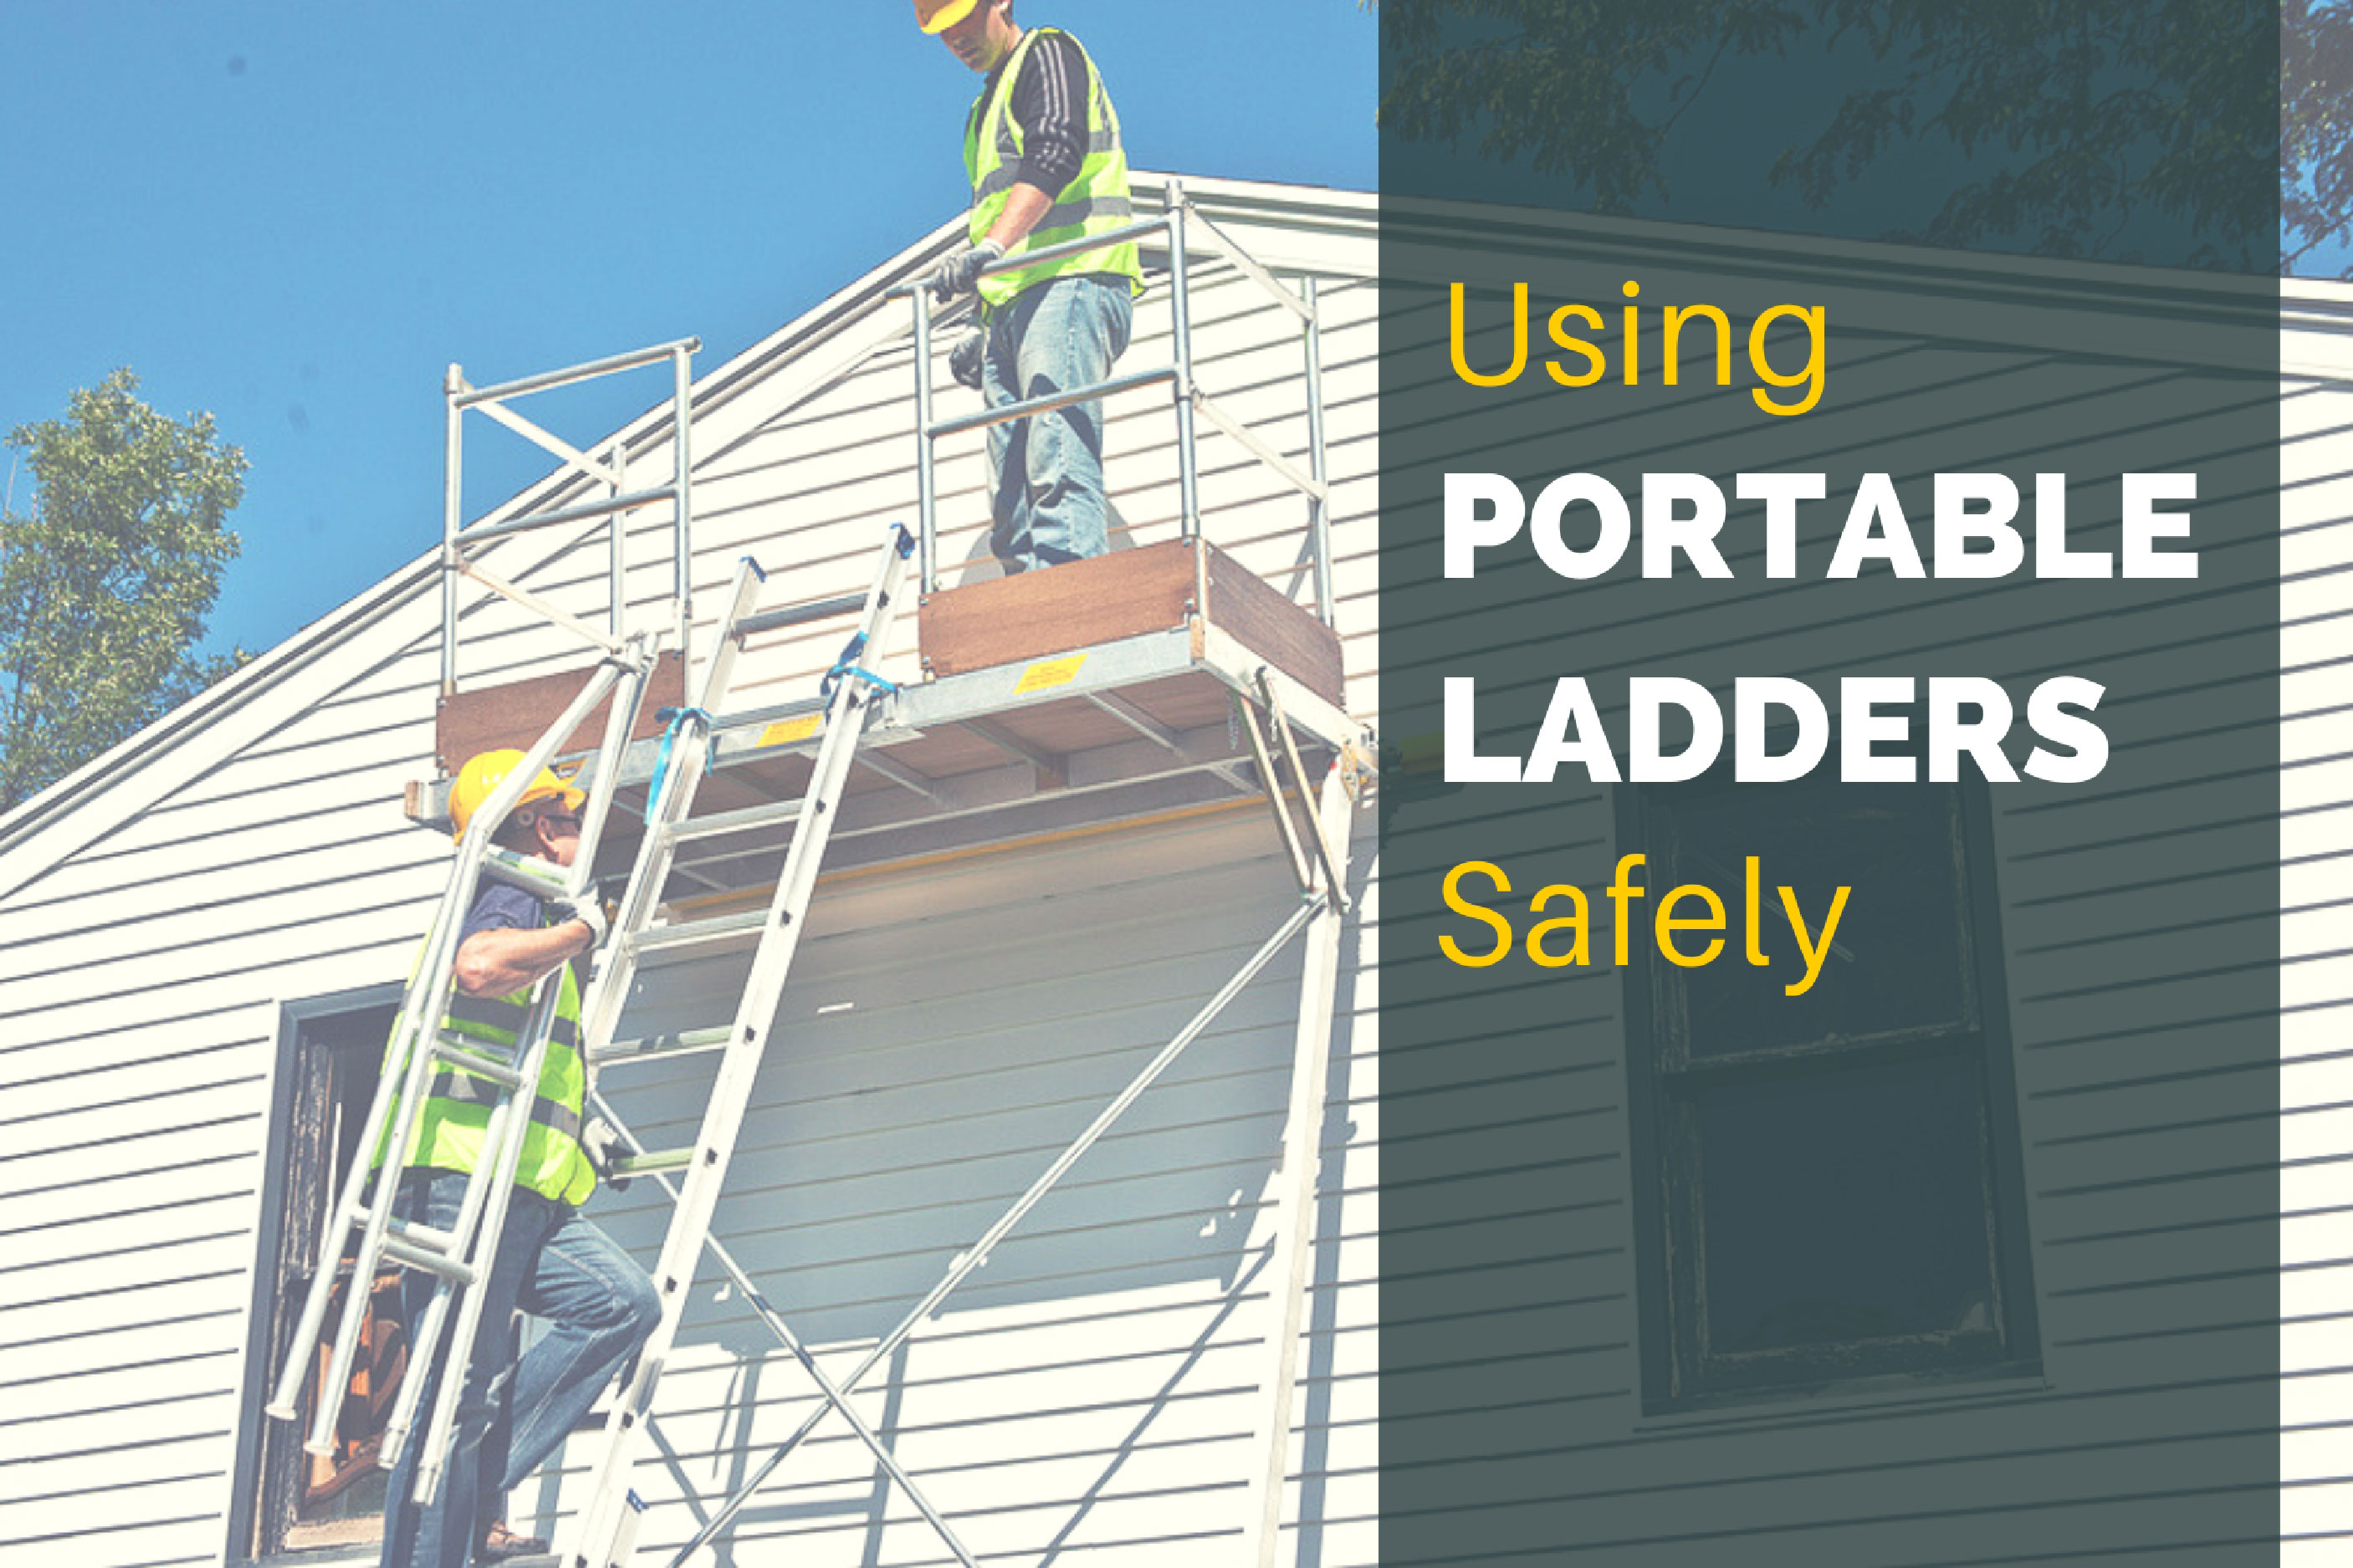 Using Portable Ladders Safely